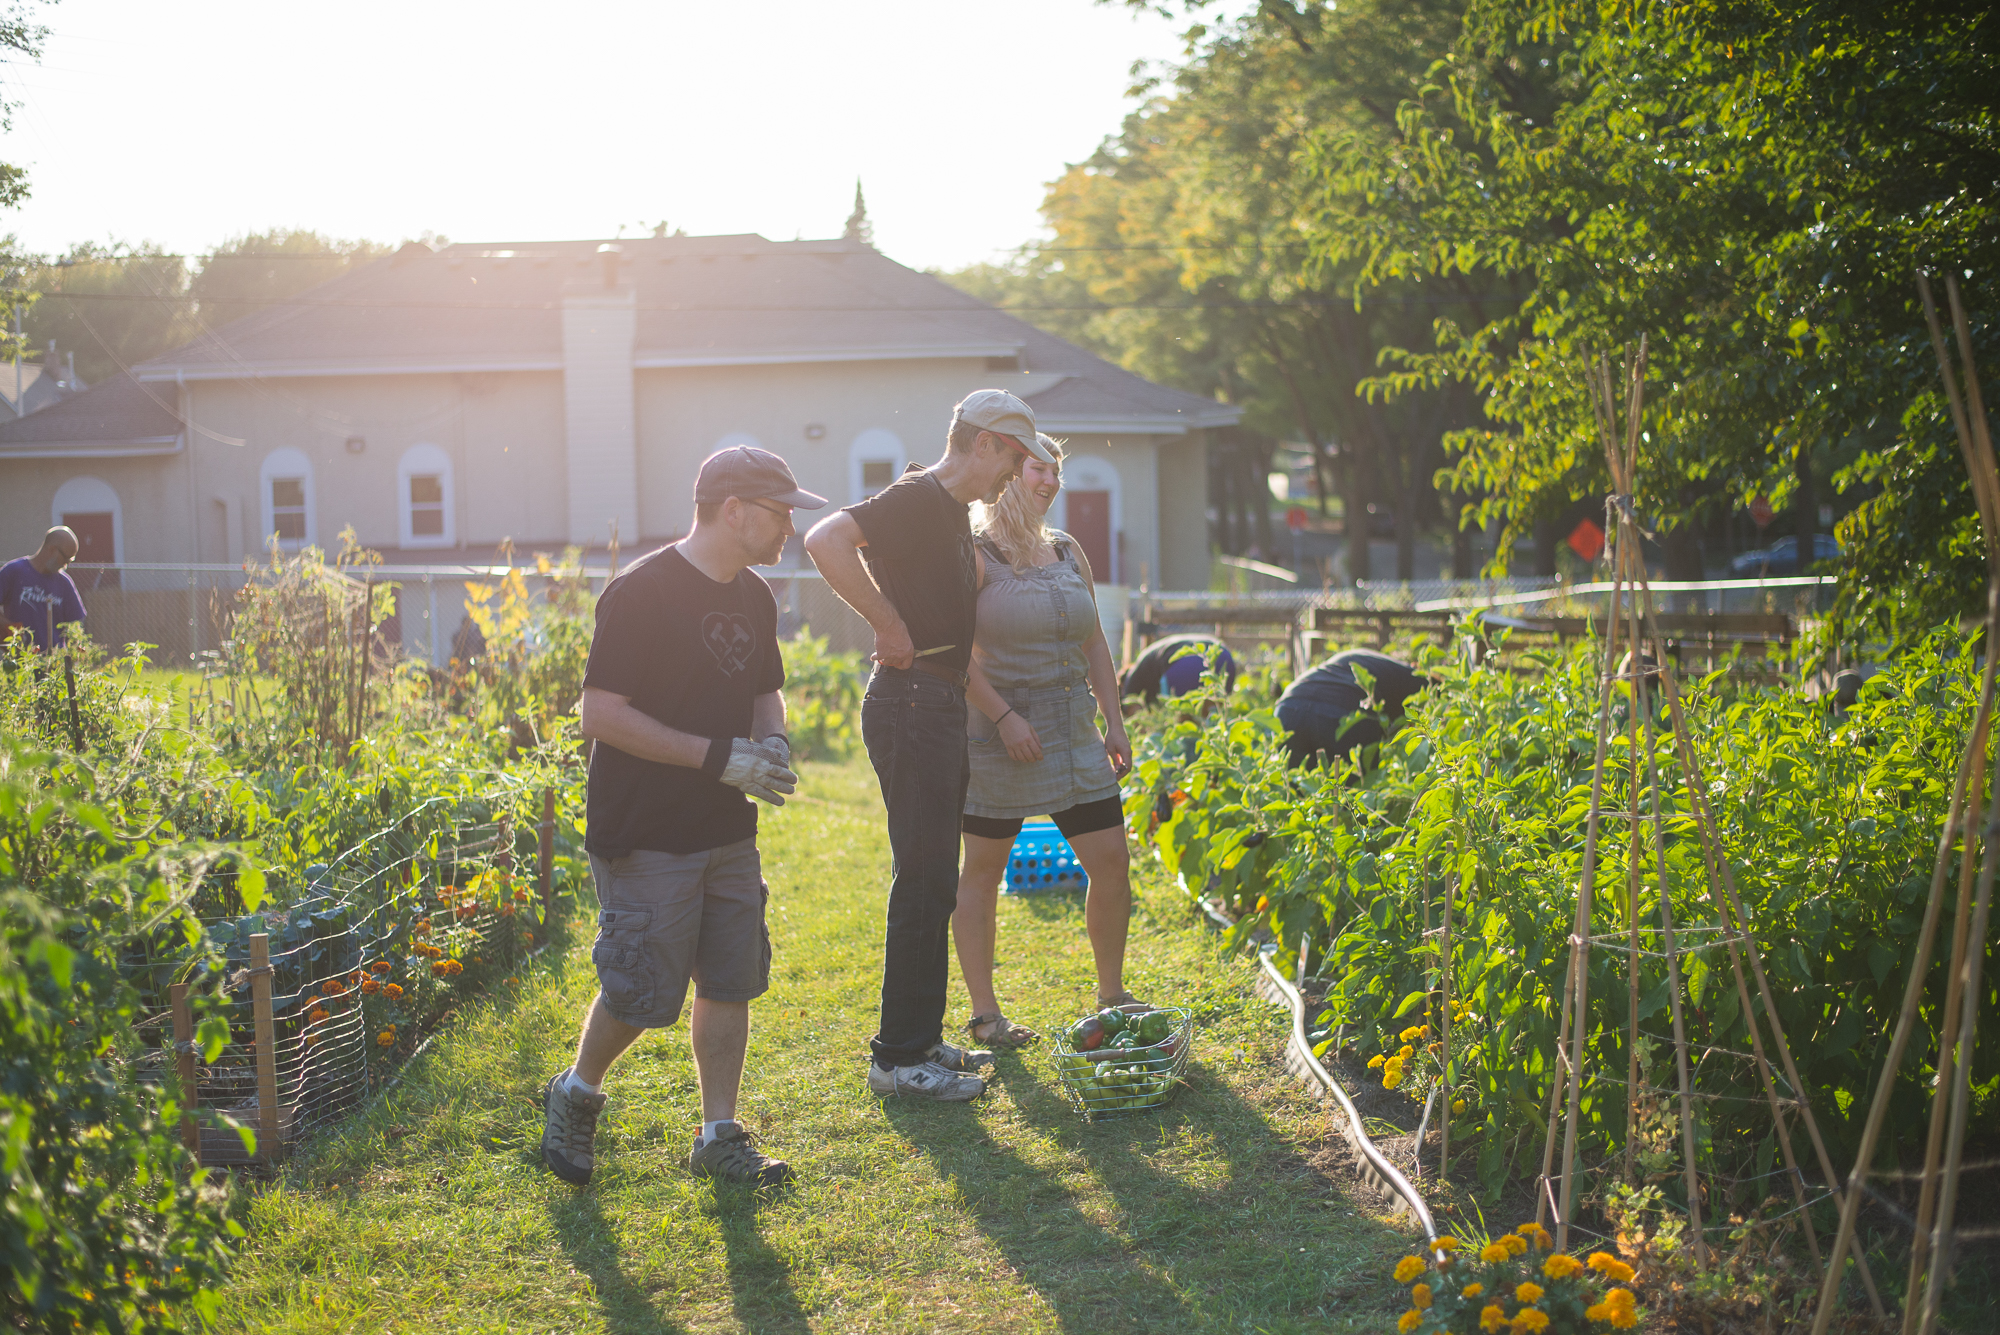 Dangerous Man Community Volunteers tend to the Sheridan Community Garden in Northeast Minneapolis // Photo by Max Lee